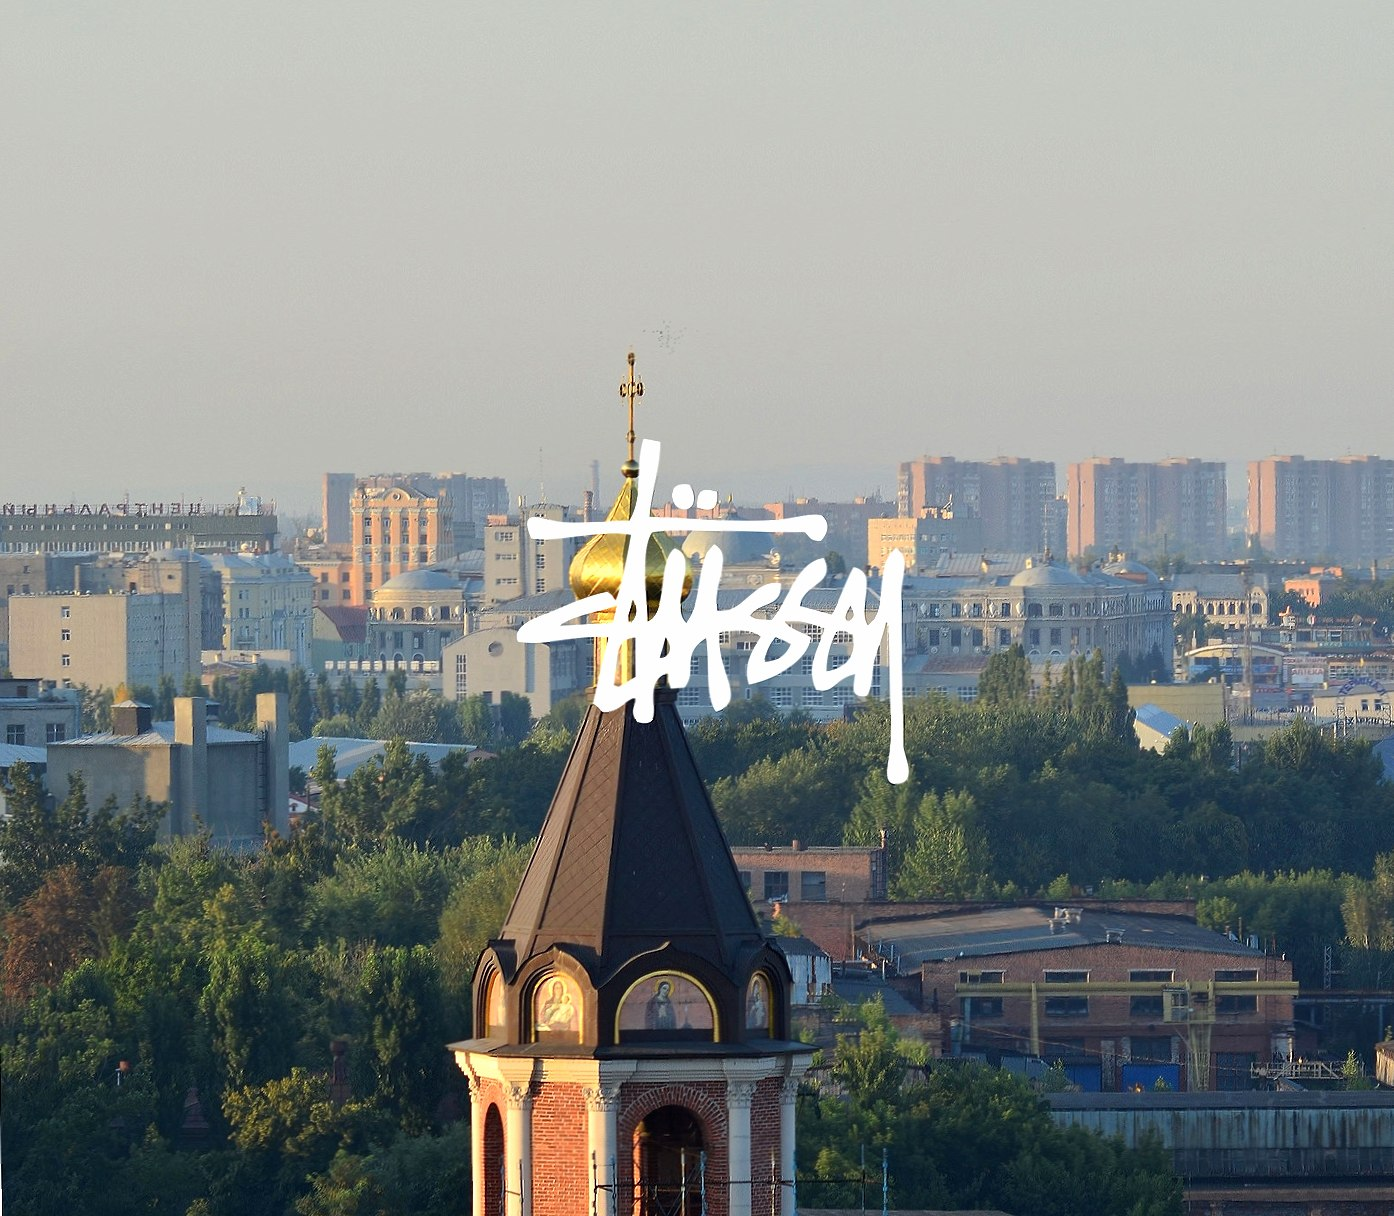 stussy style at 640 x 1136 iPhone 5 size wallpapers HD quality